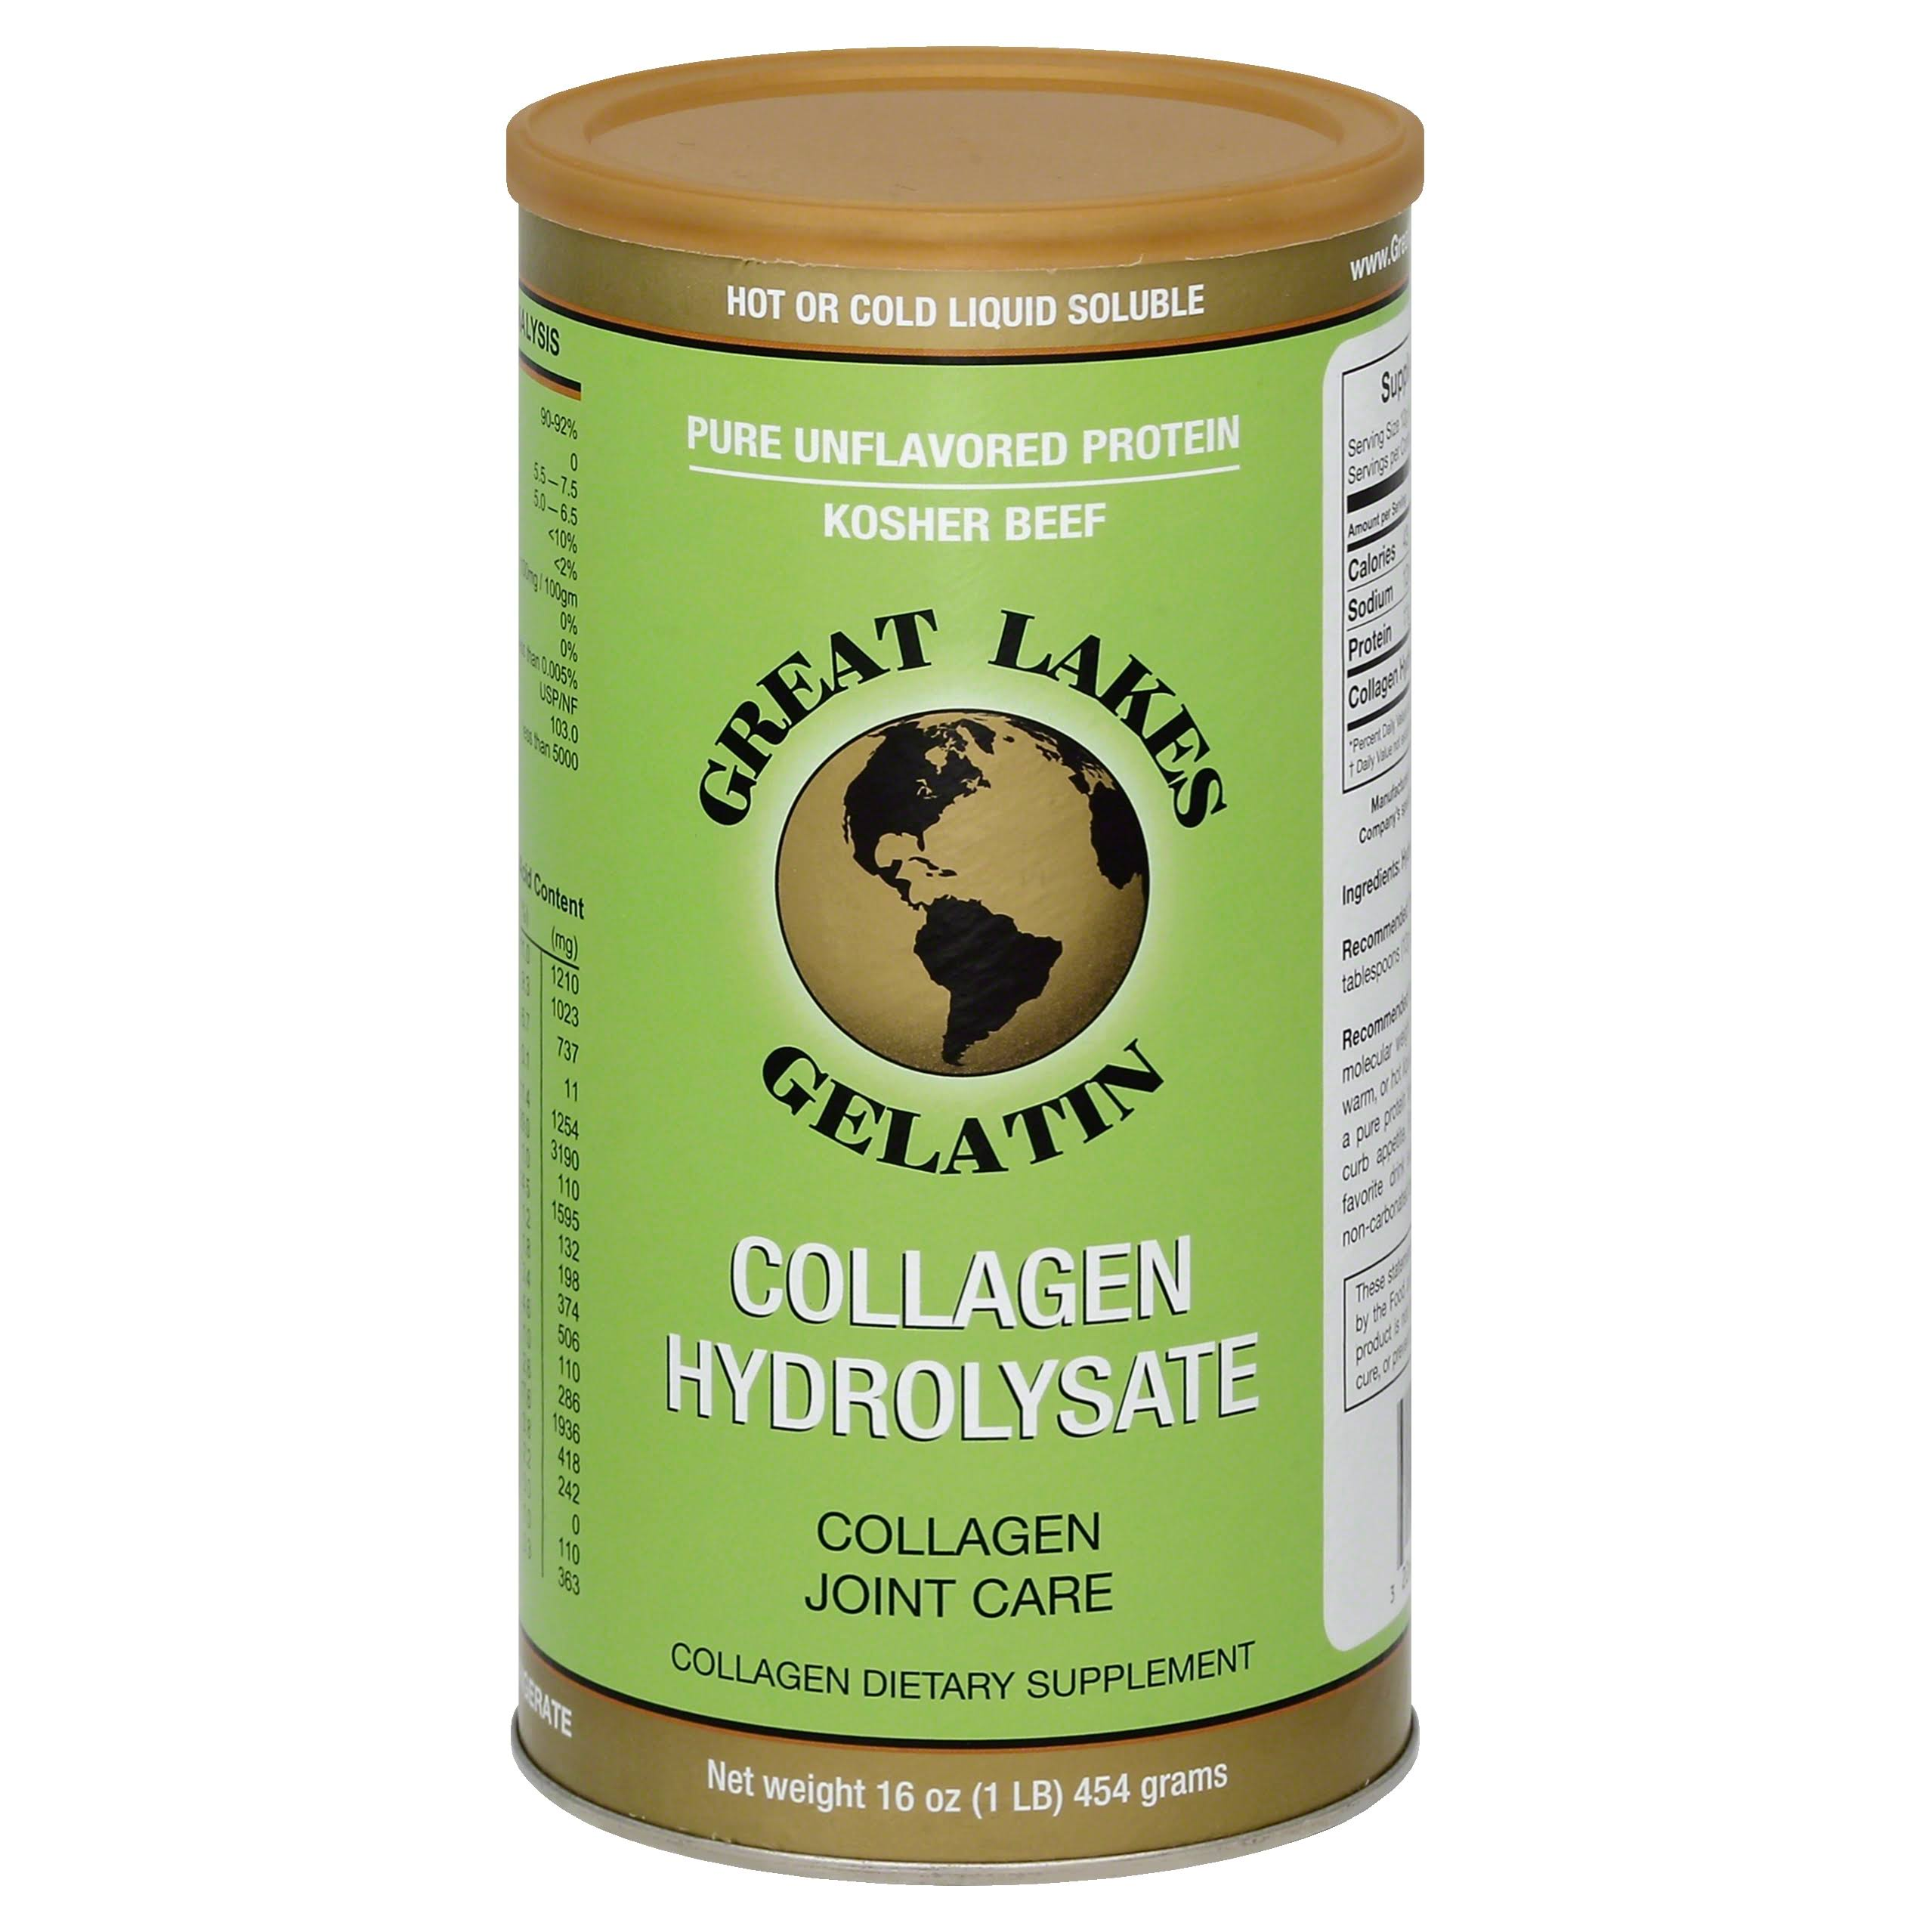 Great Lakes Gelatin Collagen Hydrolysate Beef Kosher - 16oz